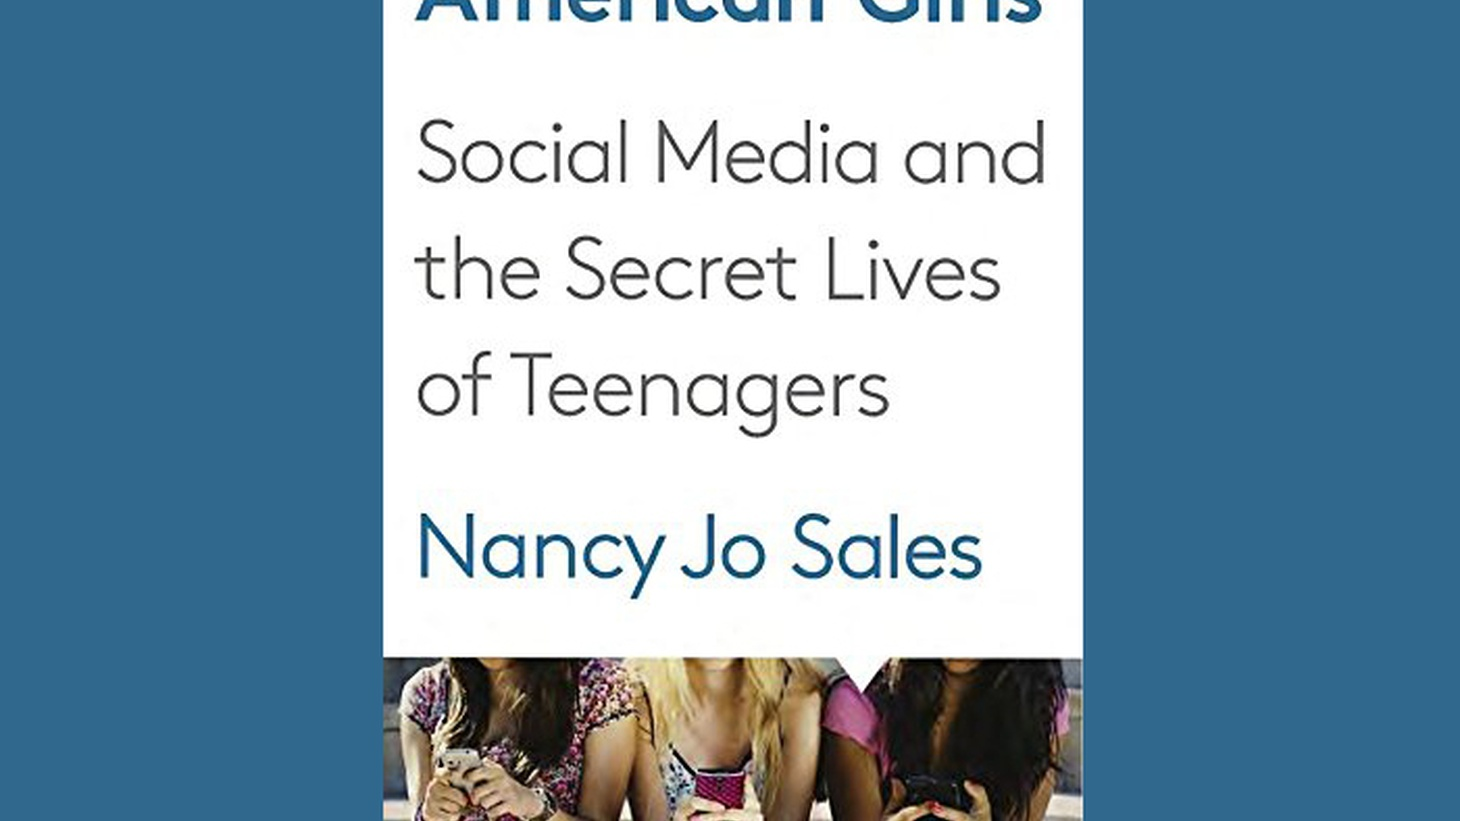 By some estimates, American teenage girls spend anywhere from 9 to 11 hours a day consuming media. They send up to 100 texts a day. What is it that they're seeing and sending? Vanity Fair reporter Nancy Jo Sales spent two and a half years interviewing teens across the country and wrote about it in her new book  American Girls.